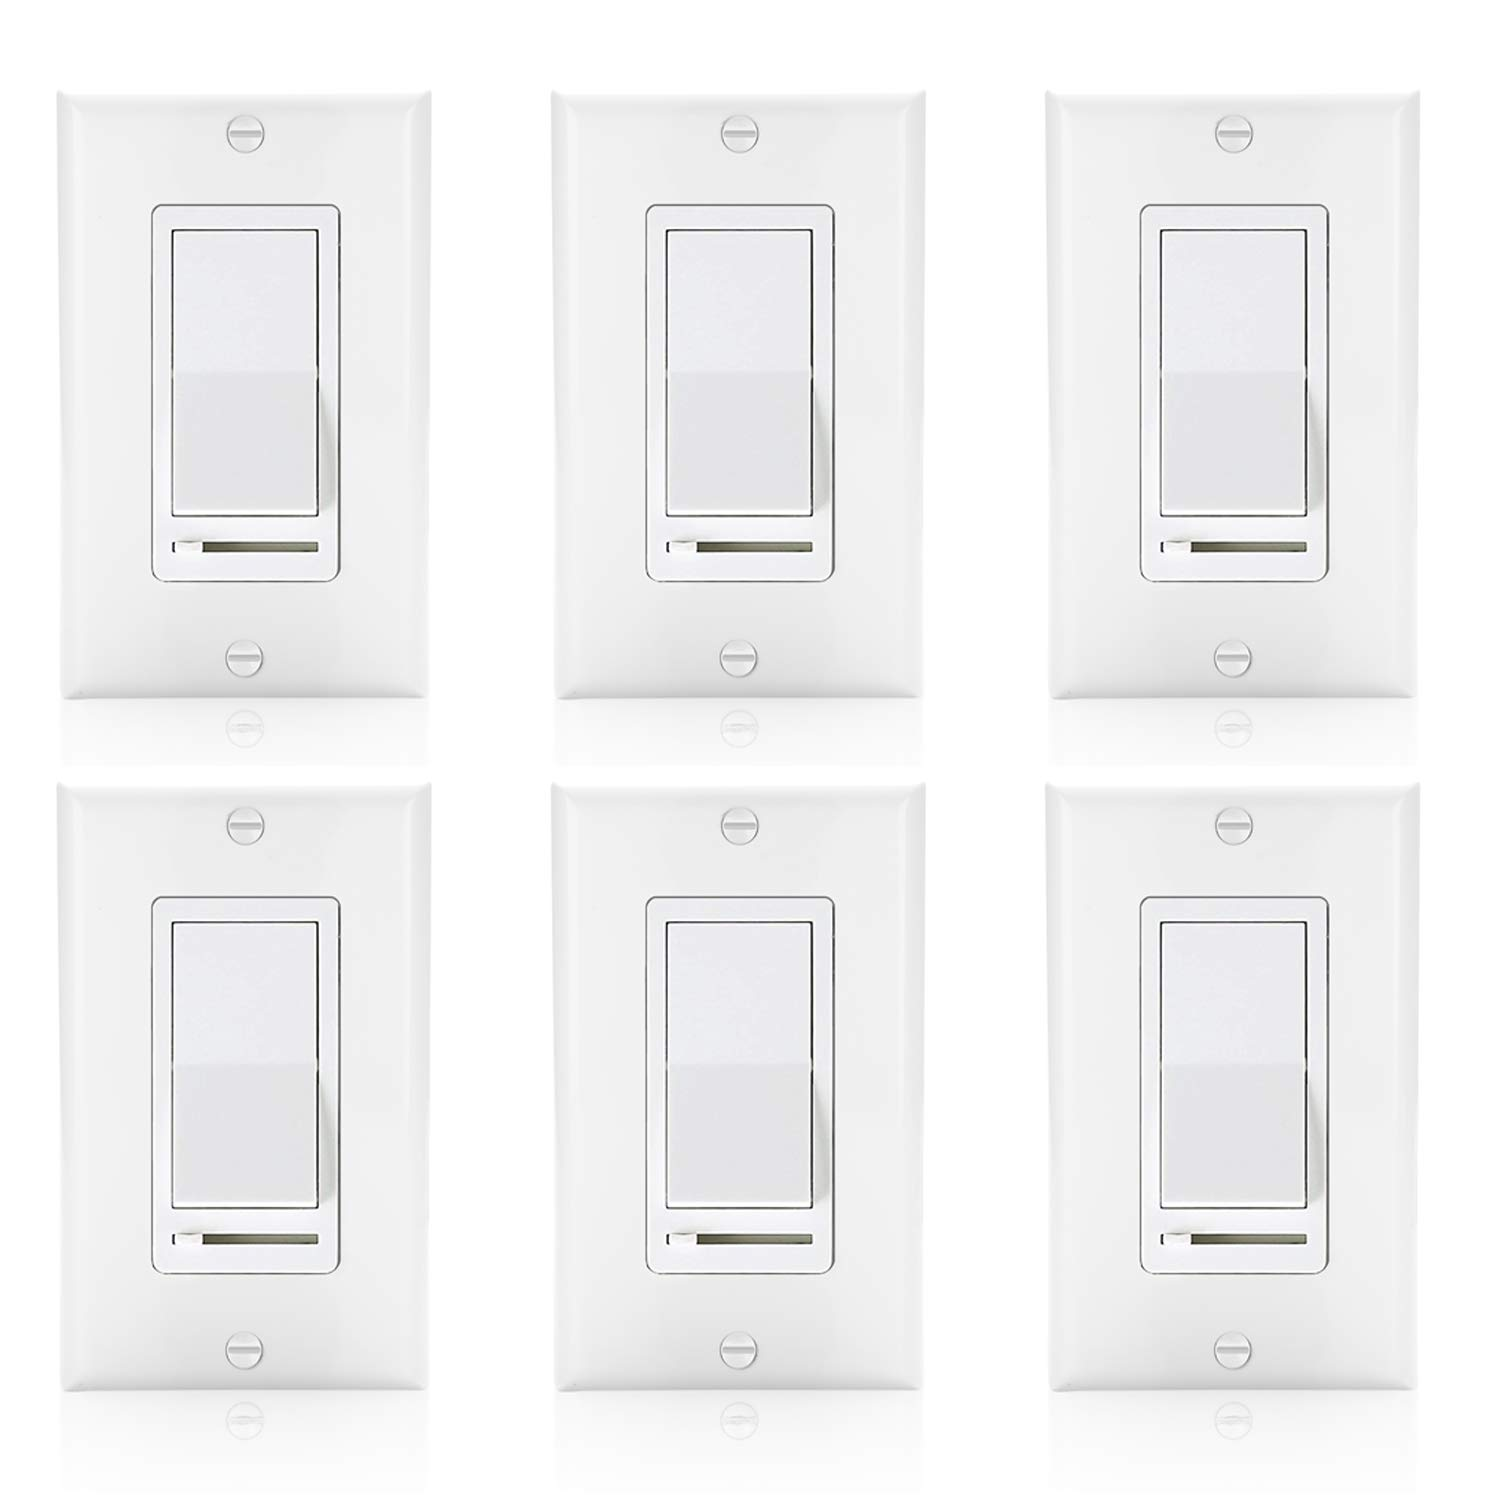 [6 Pack] BESTTEN Decorative Rocker Light Dimmer Switch with Horizontal Slider & Side Adjuster for Incandescent or Halogen Bulbs, CFL and LED Dimmable Lamps, Decor Wall Plate Included, UL Listed, White